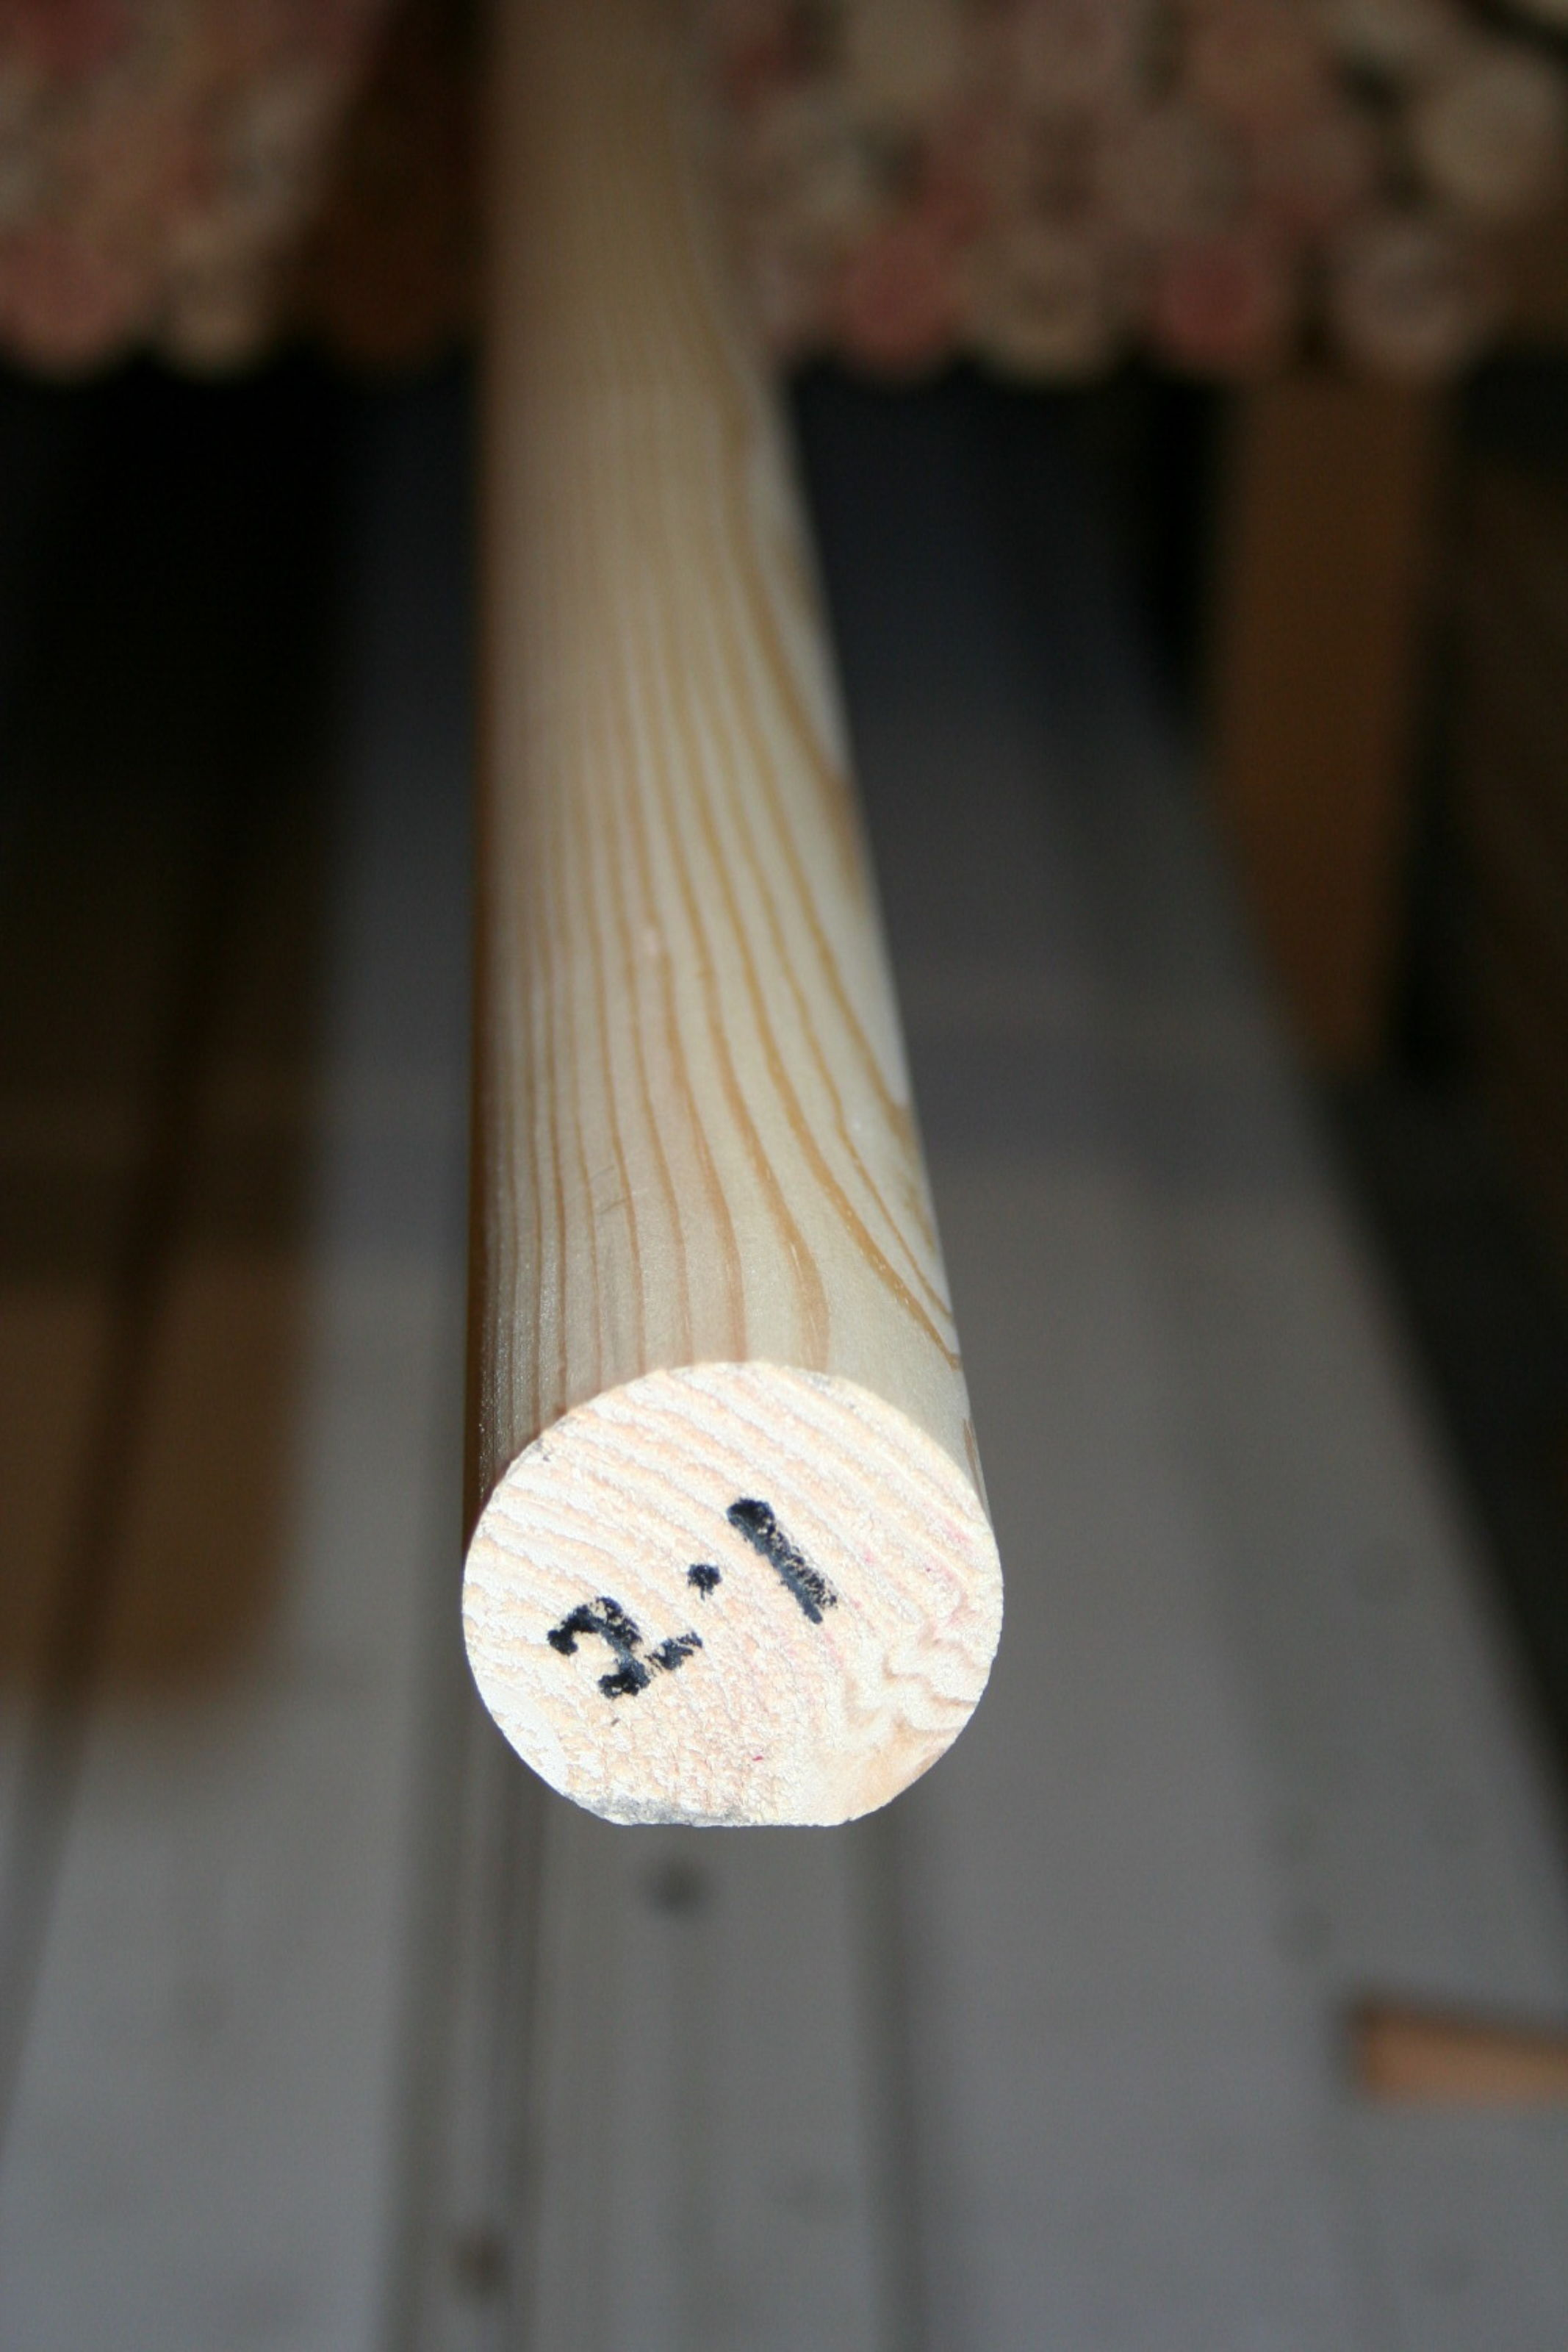 50mm Mopstick Softwood Handrail - length; Img 6557